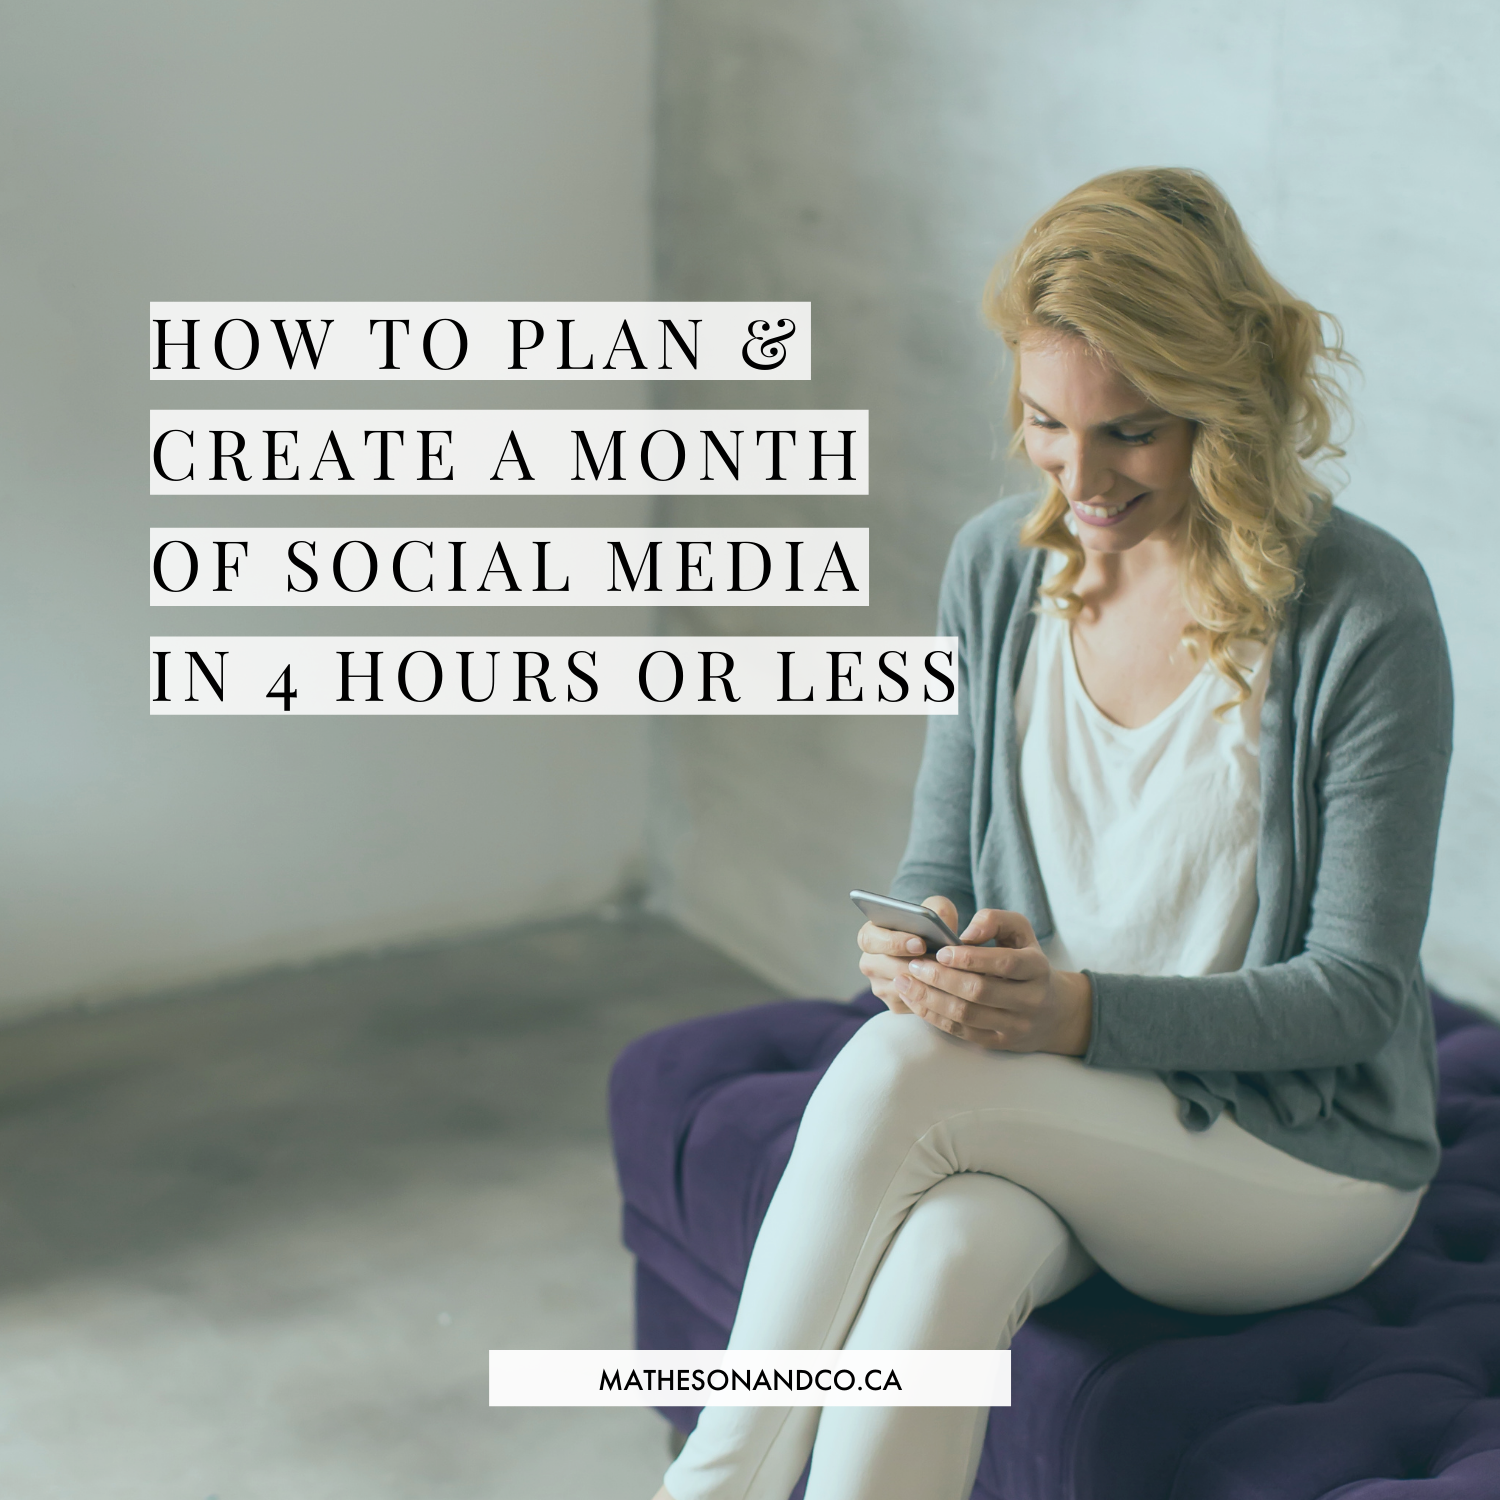 How to Plan + Create a Month of Social Media in 4 Hours or Less